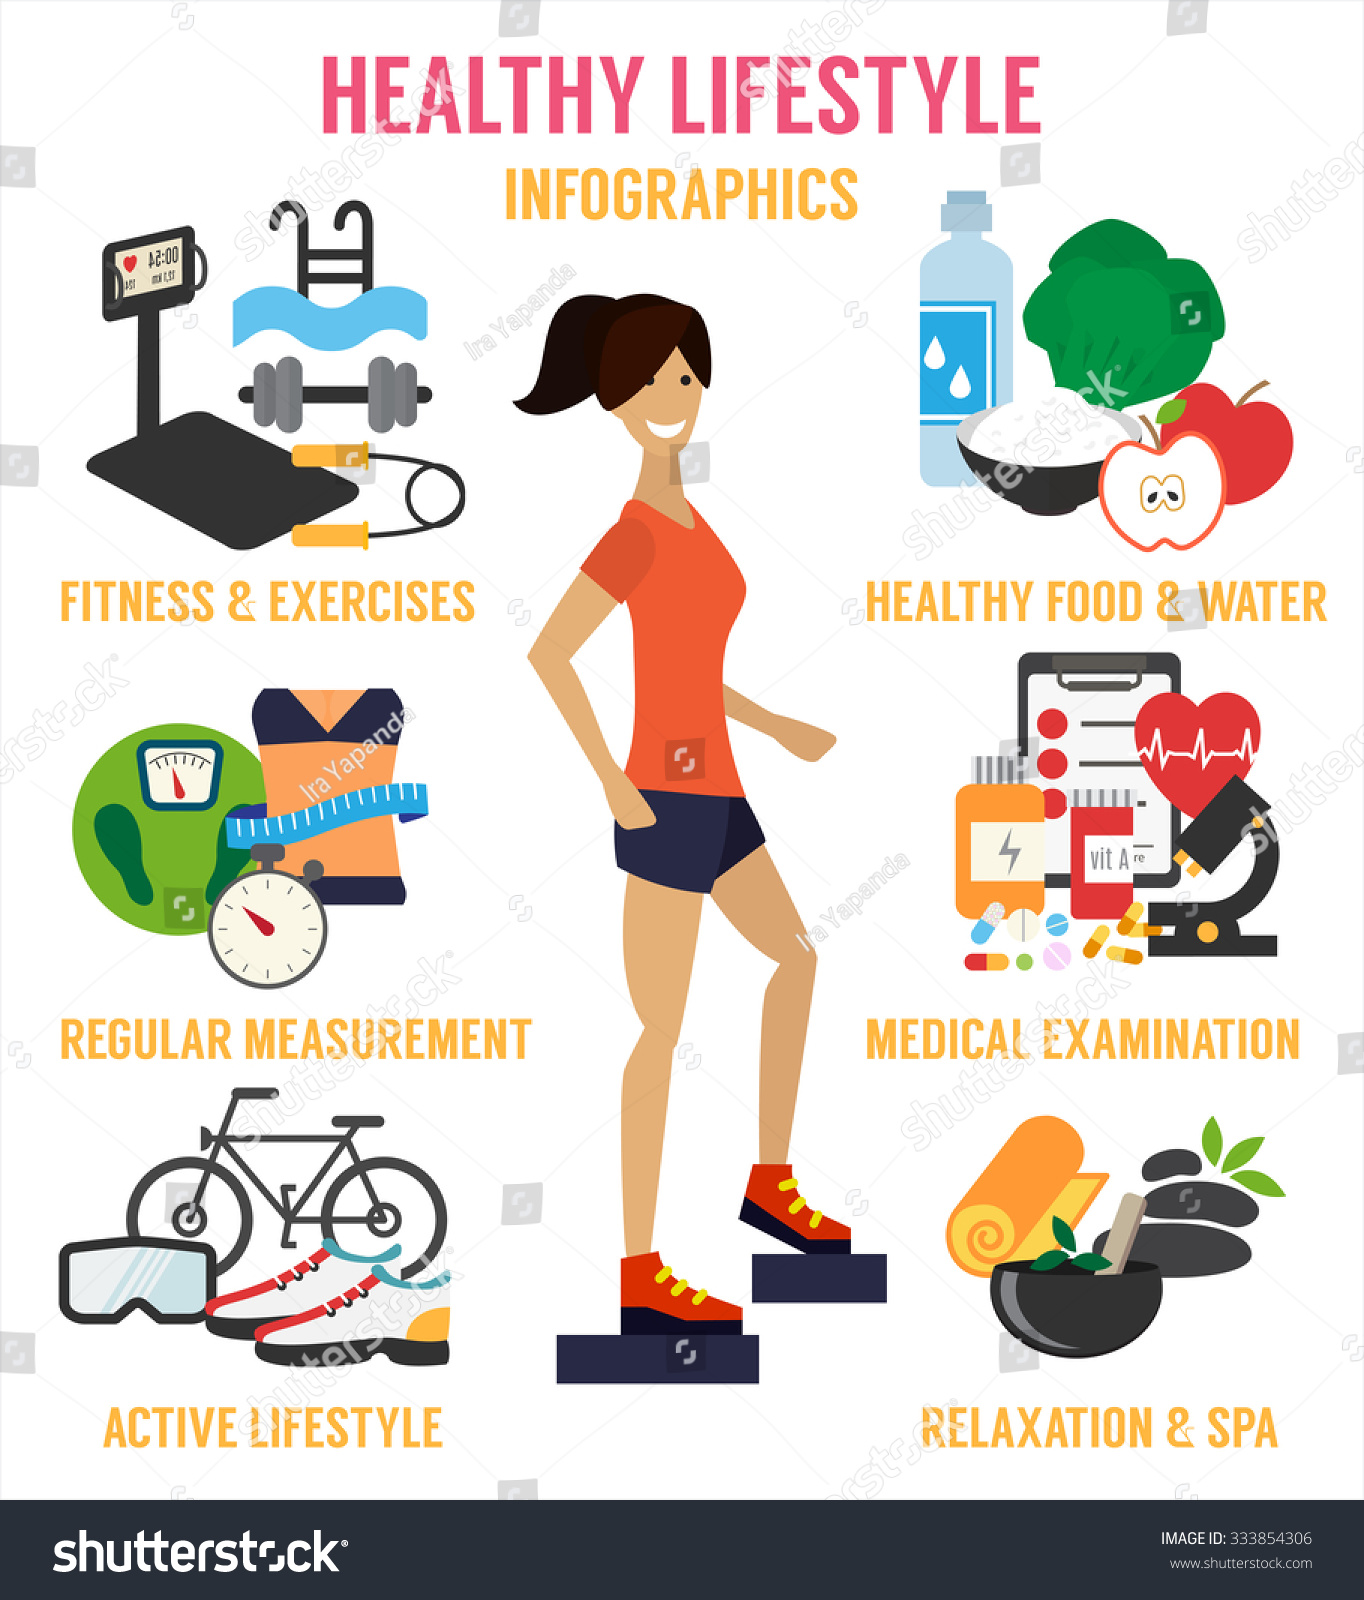 Healthy Lifestyle Infographic Fitness Healthy Food Stock